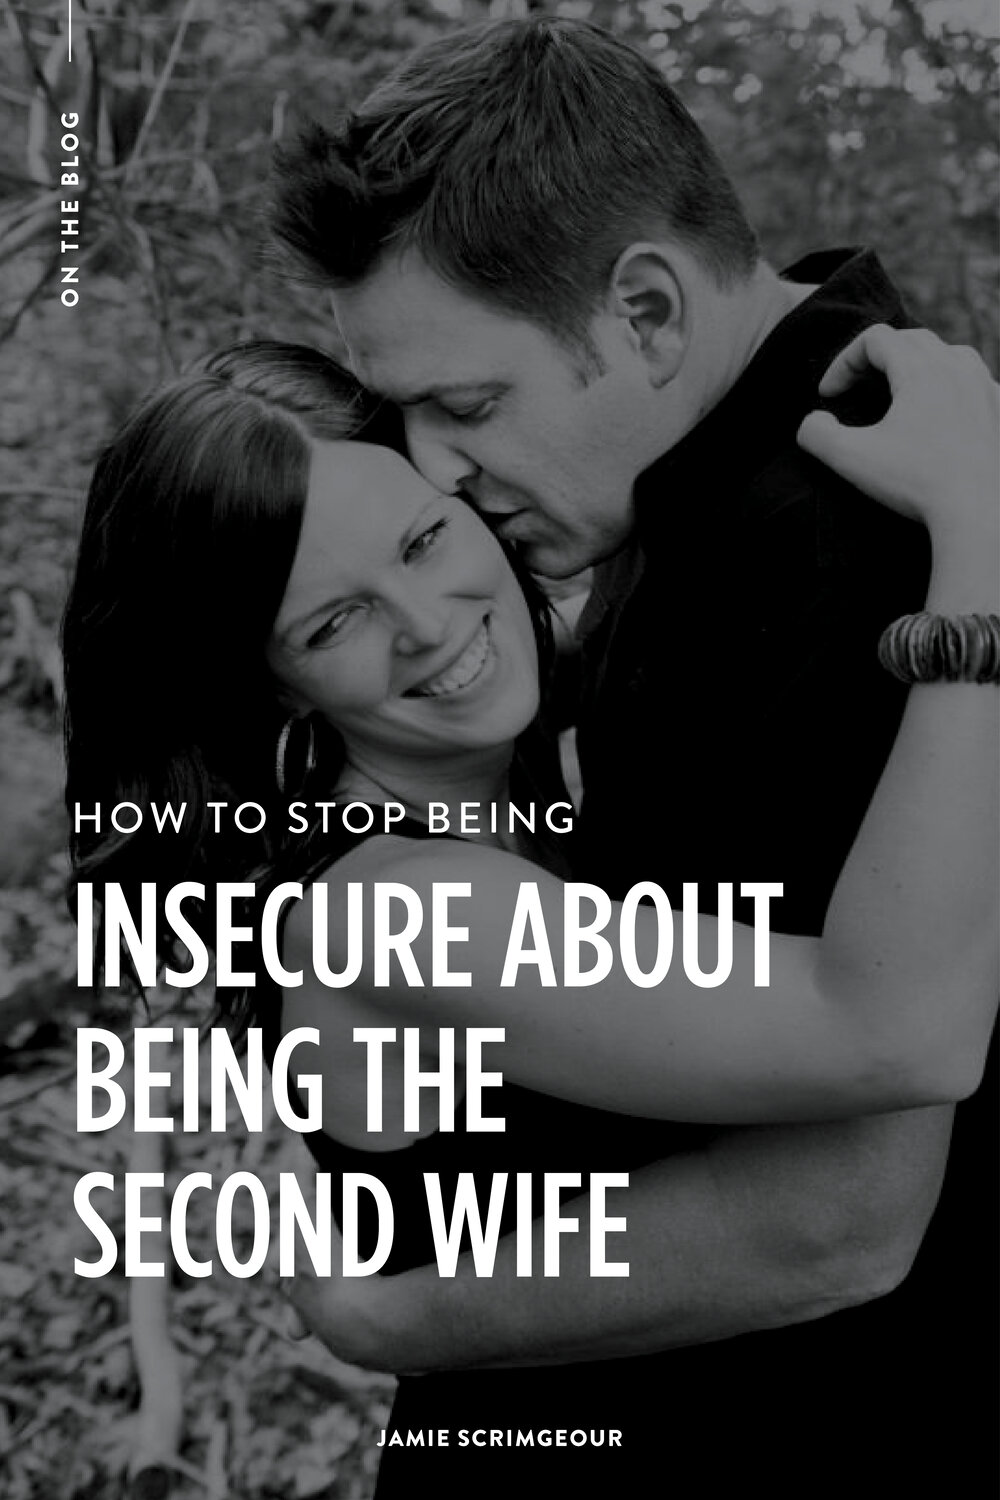 The second wife being Ten Tips